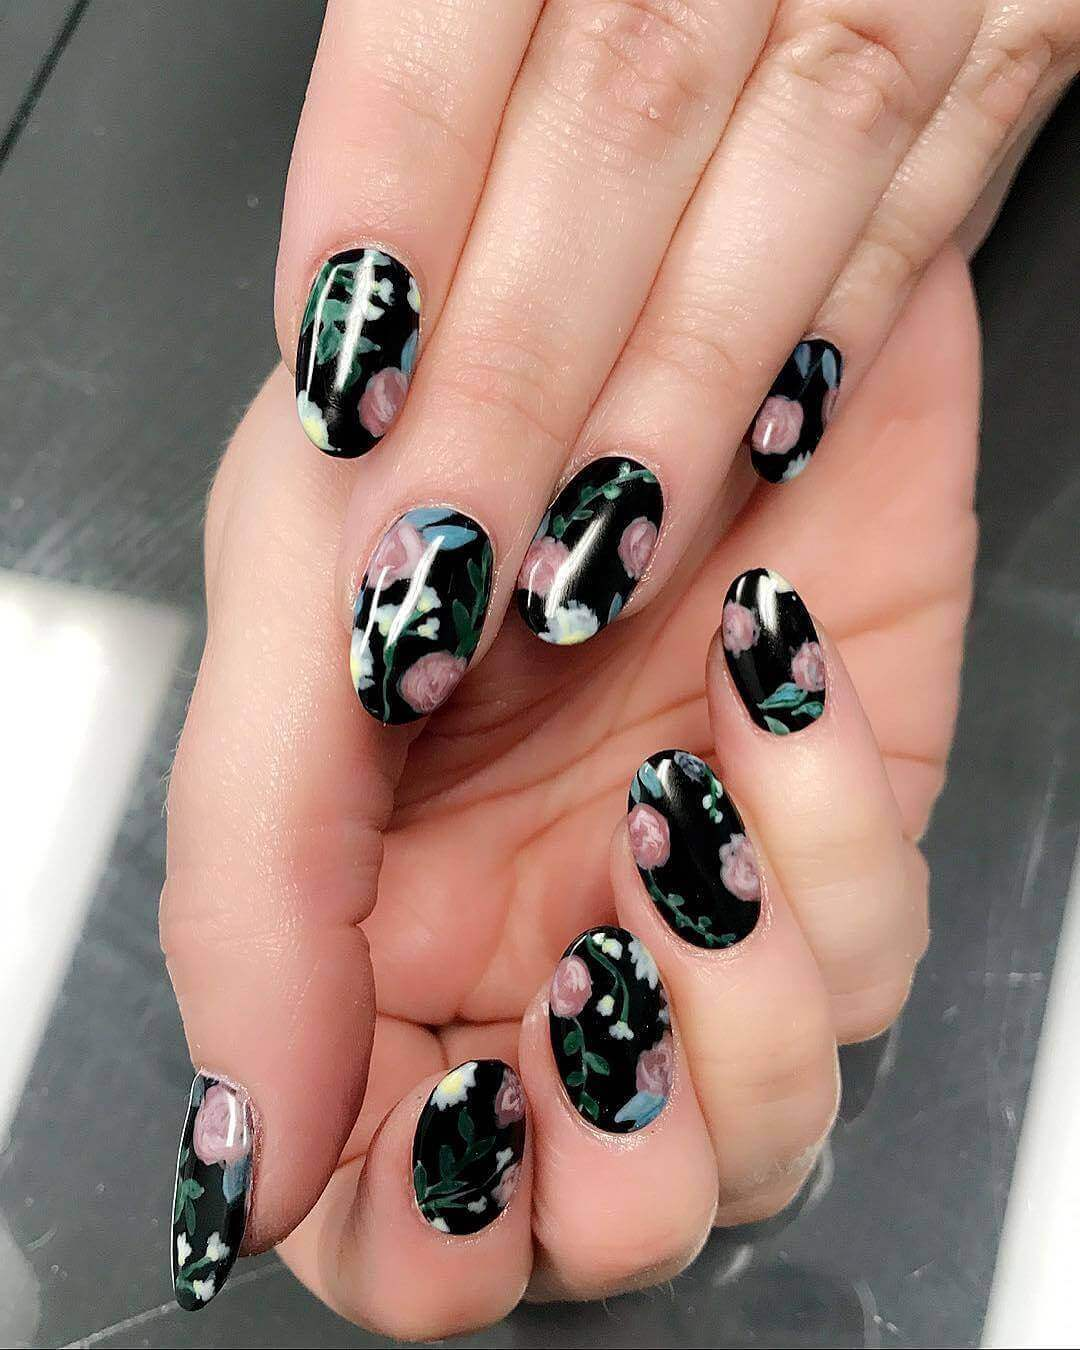 50 Dazzling Ways To Create Gel Nail Design Ideas To